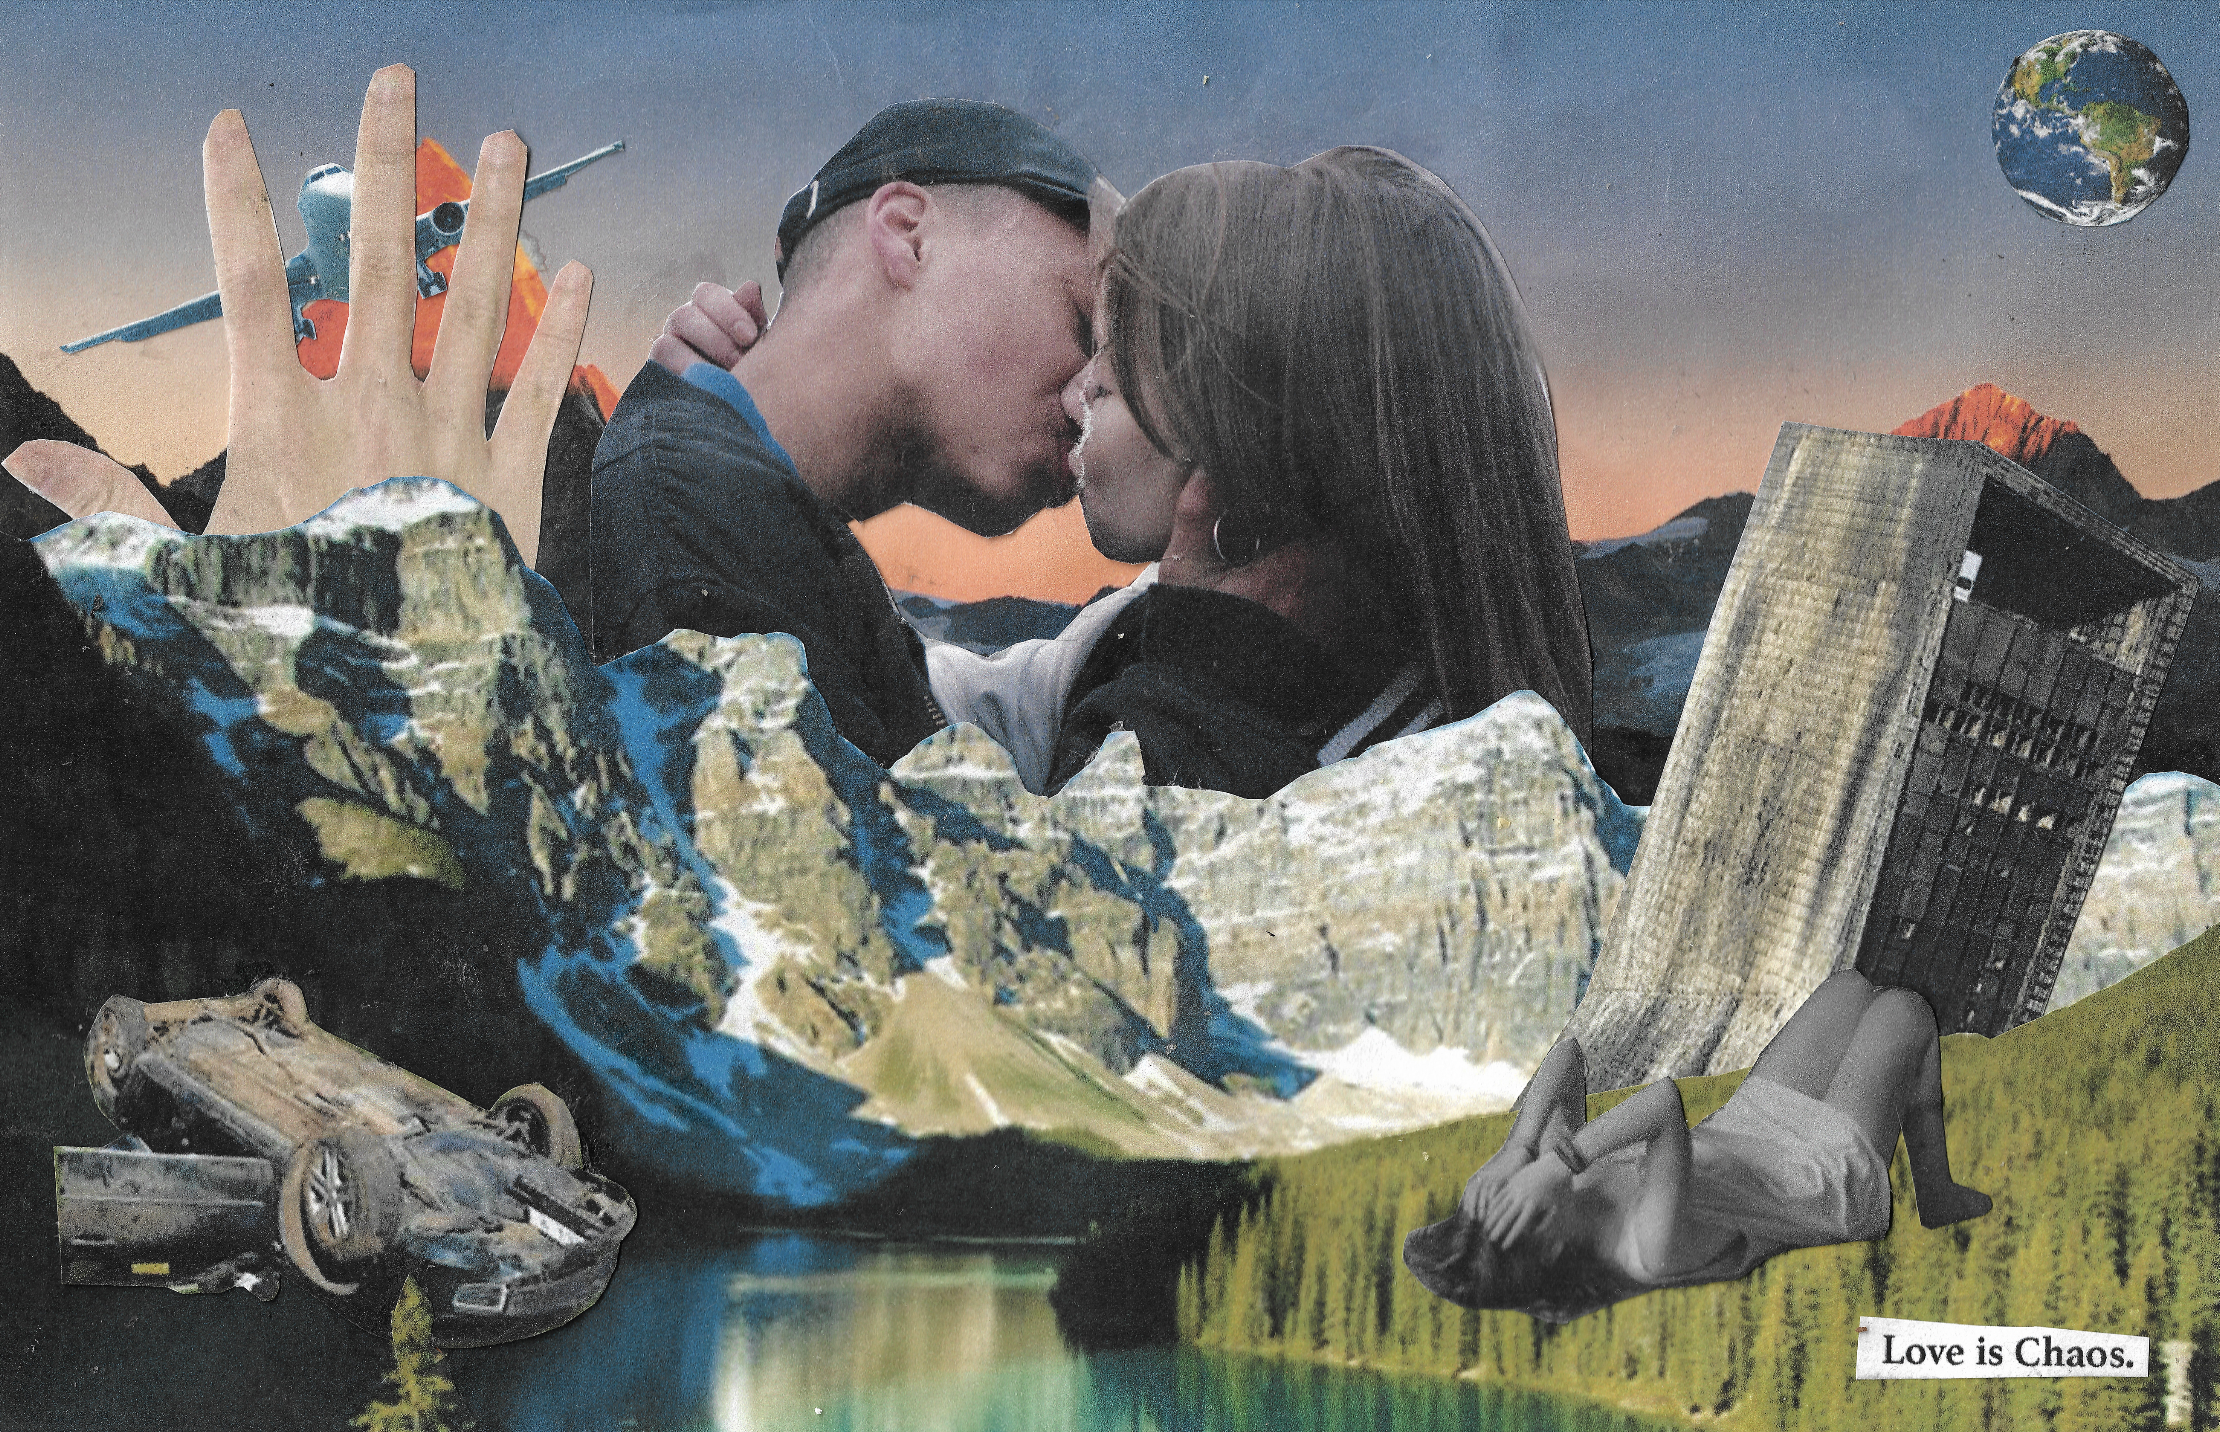 LOVE iS CHAOS - Collage By Shaquille-Aaron Keith for LOVE iS CHAOS (2018) project by Thomas Abibu, Main couple shot by Liv Jank. (2017)